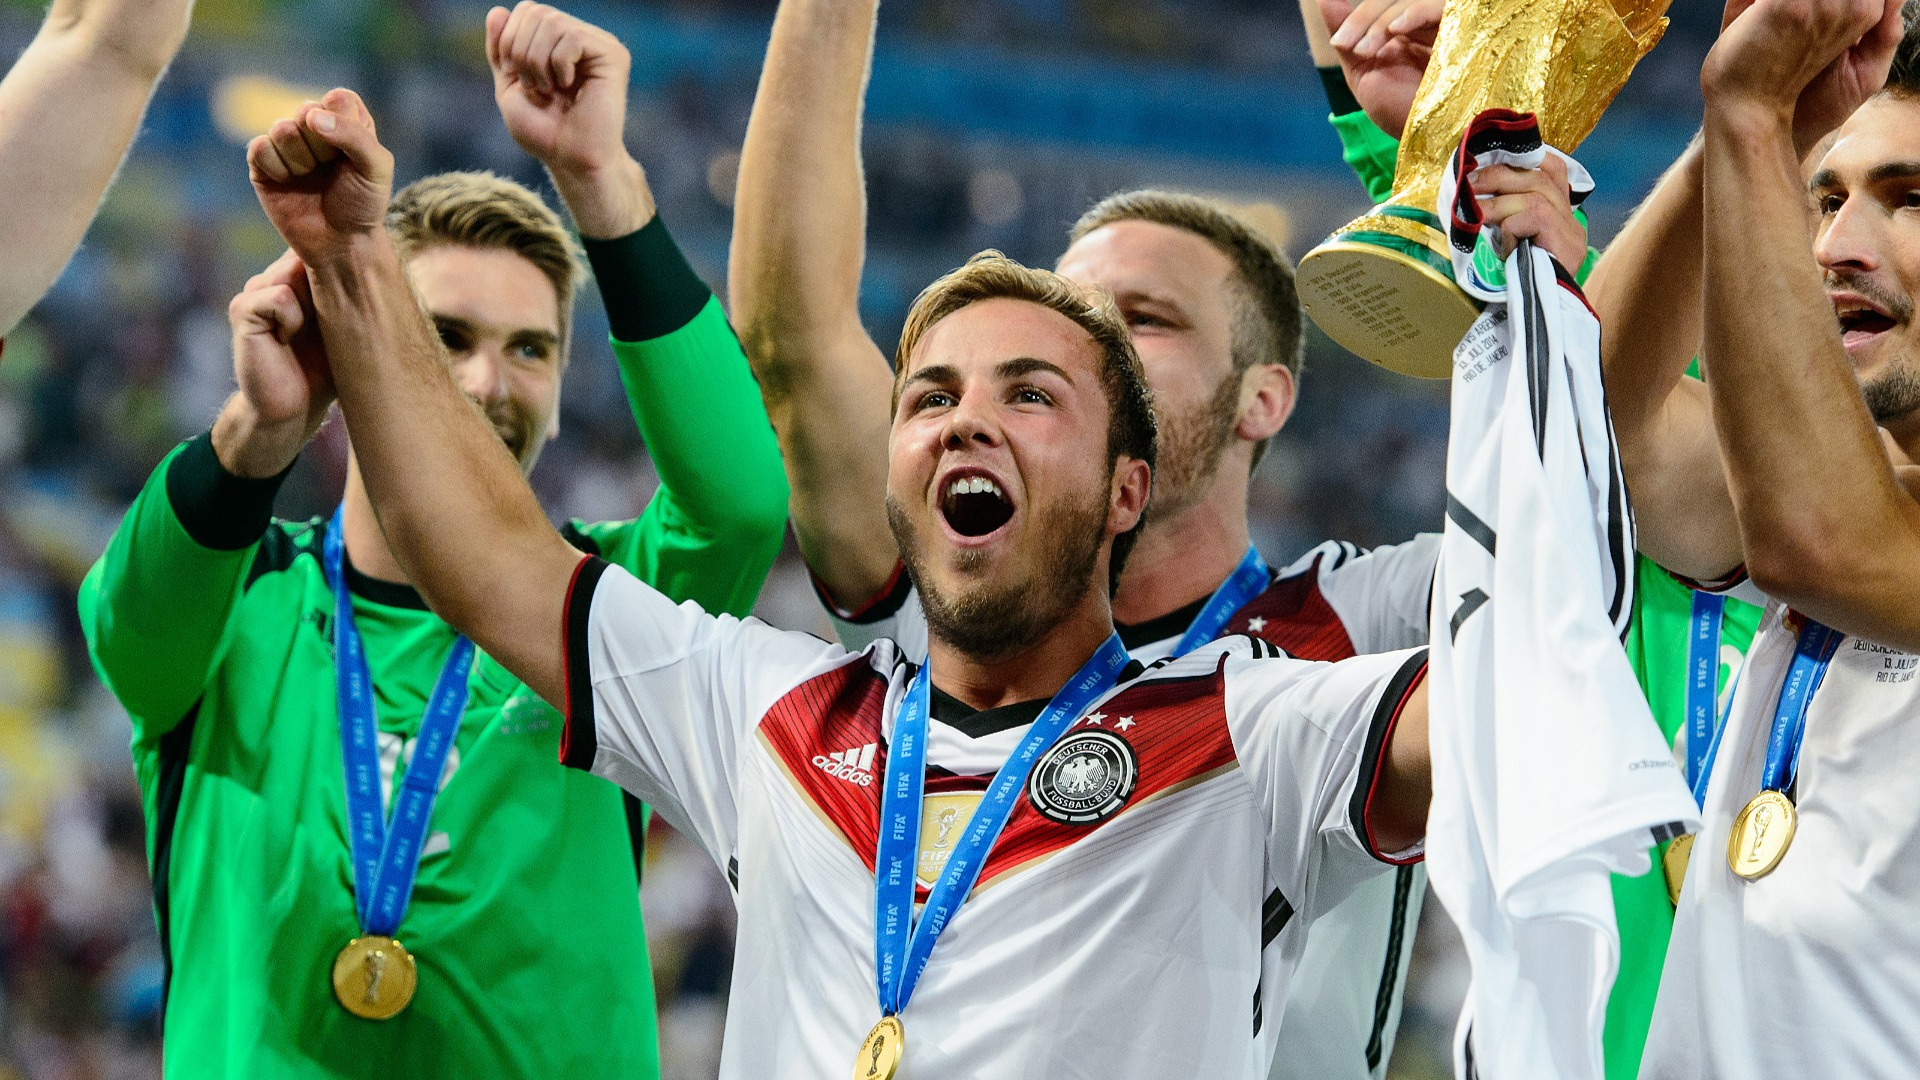 Germany hero Gotze struggled with 'huge expectations' after 2014 World Cup